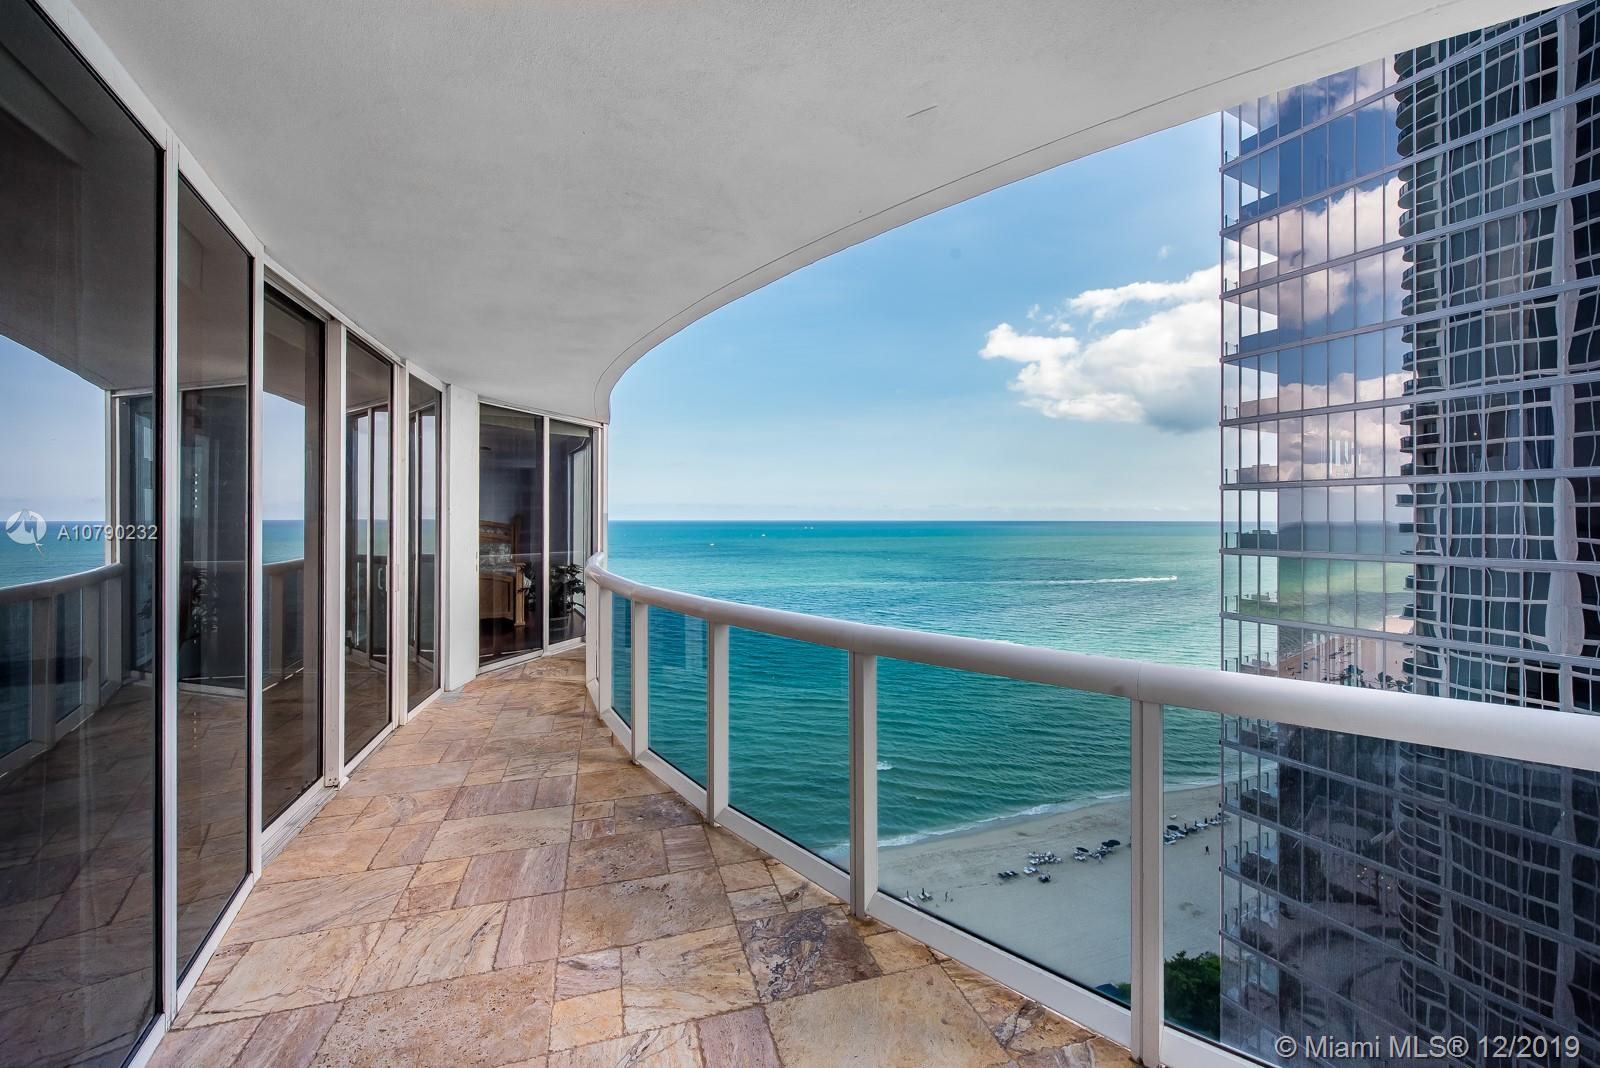 See this LUXURY OCEANFRONT 2 BA / 2 BA + Den (enclosed den as a third bedroom), split floor plan. 1644 SqFt residence located in the heart of Sunny Isles Beach with Gorgeous Ocean, Intracoastal and City views from living and two bedrooms. Finishes include floor to ceiling impact windows, walk-in closets, marble floors,  Jacuzzi tub in Master bedroom and shower. Building amenities include a fitness center, Gym, restaurant on the beach, beach service, 24 hours security and valet. One parking space.Easy to show, Make an offer.